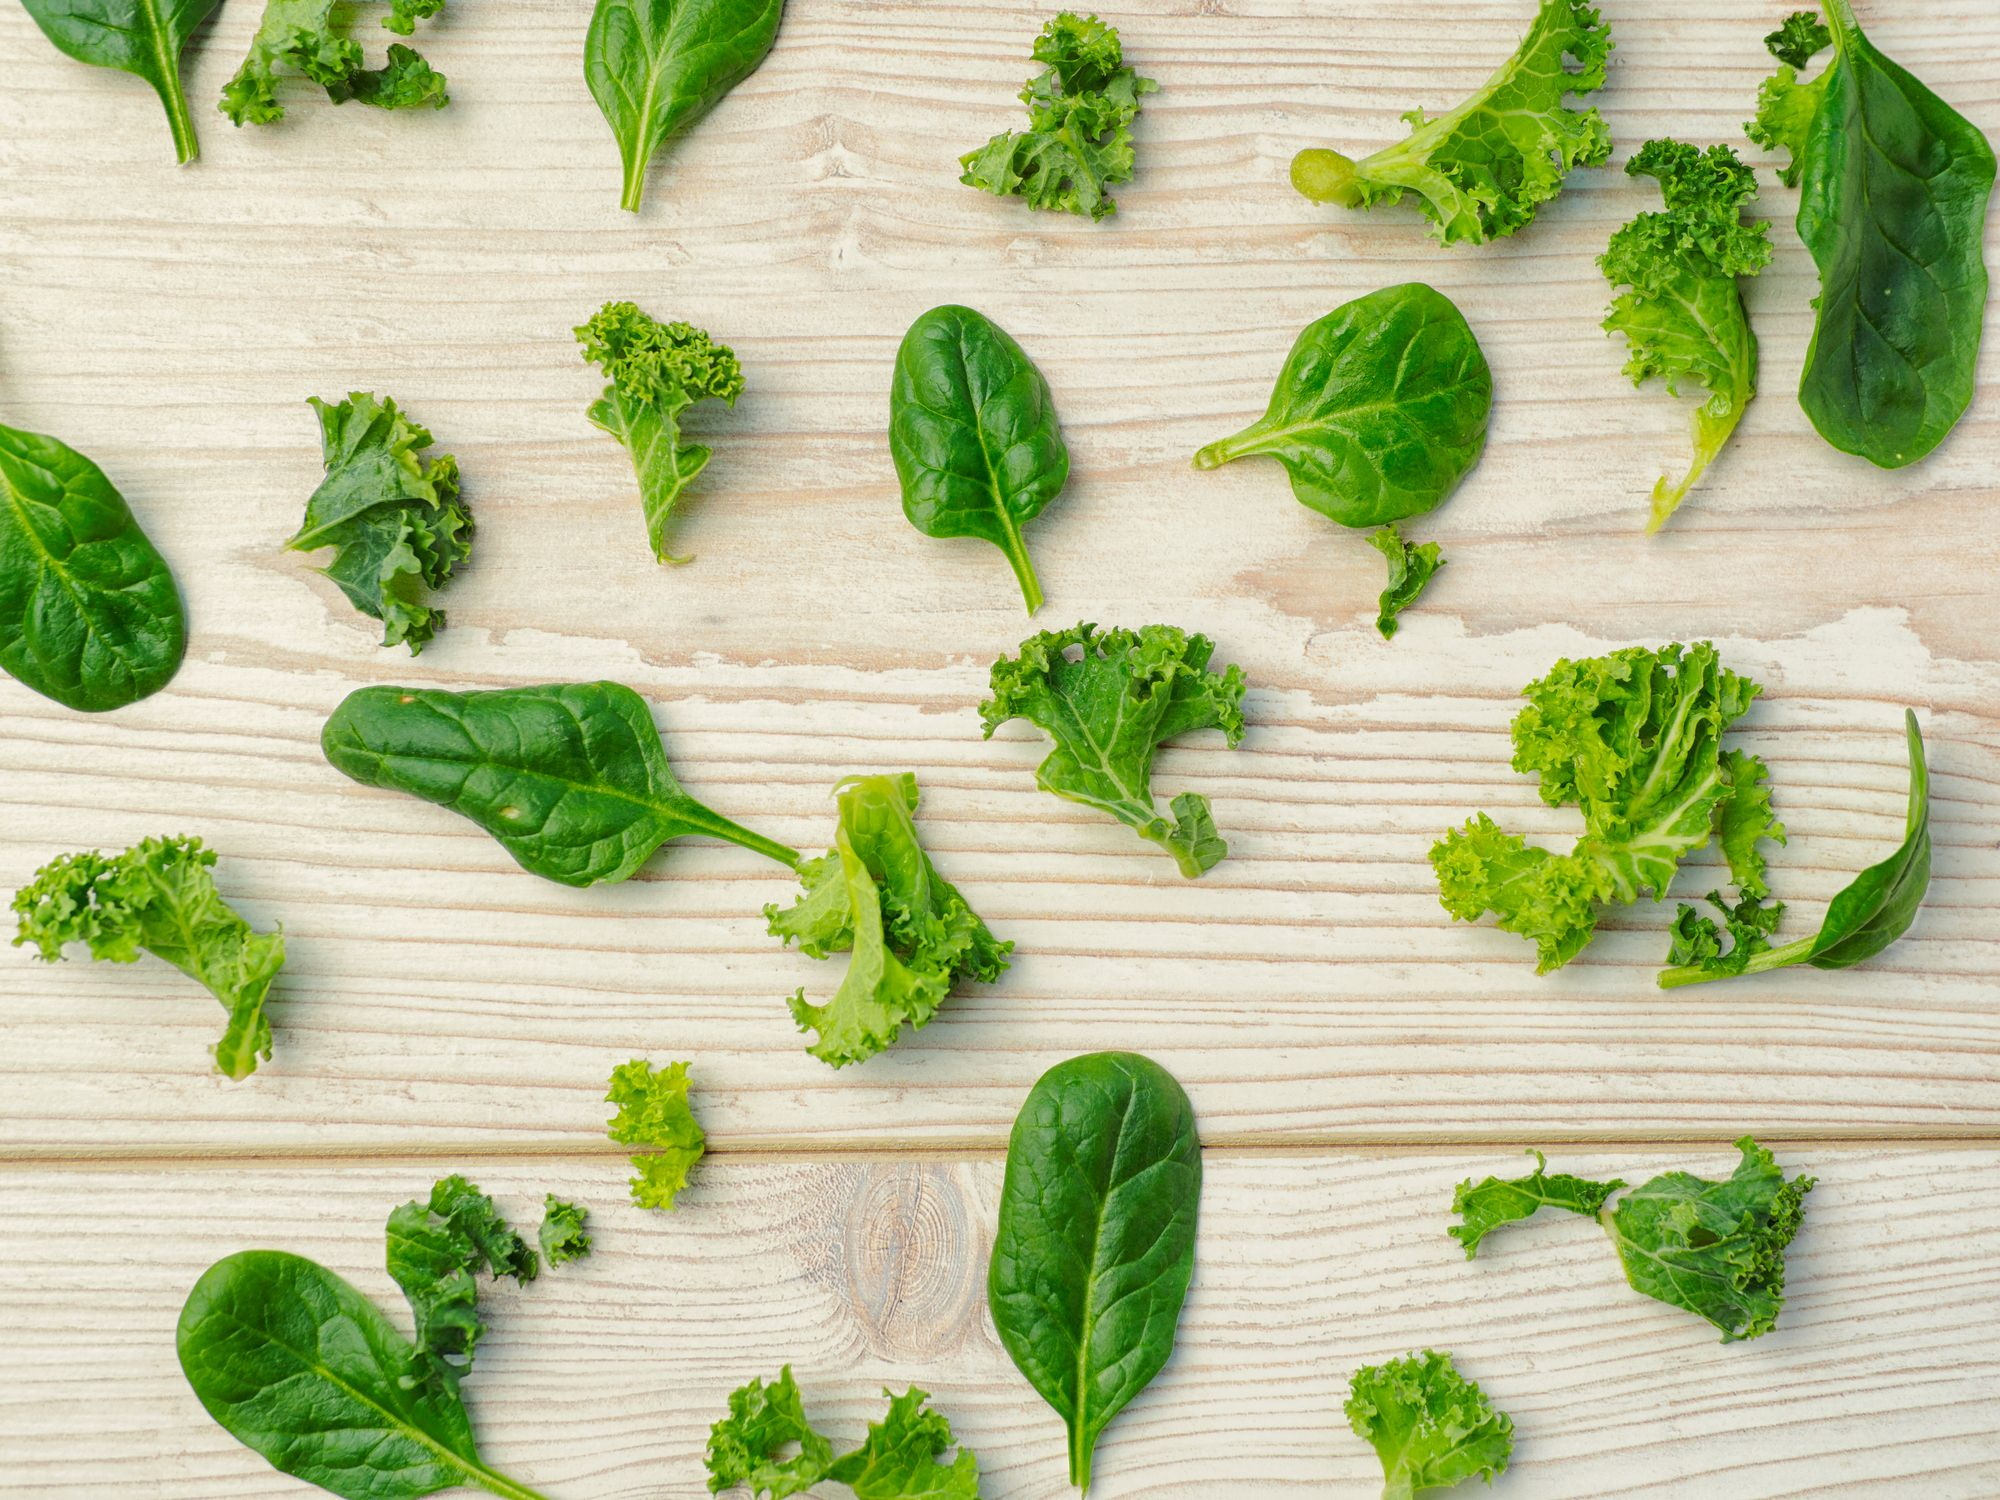 Kale Vs. Spinach: What's Better For You?